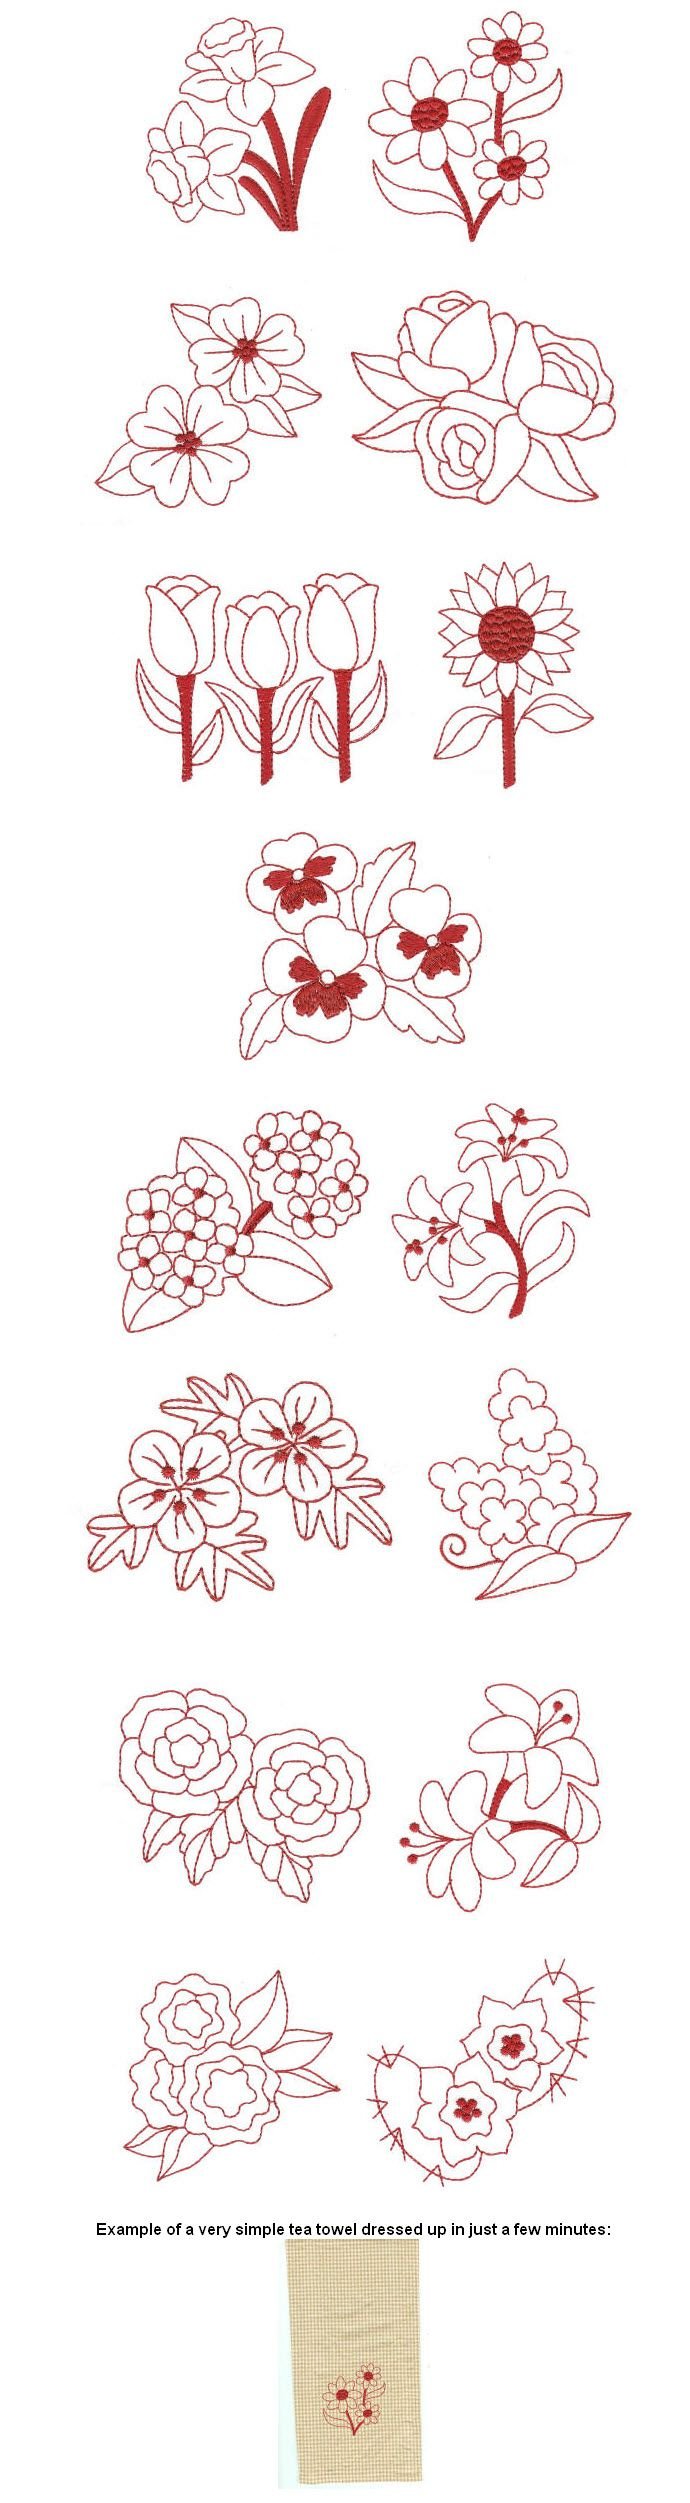 Embroidery machine embroidery designs beautiful blossoms redwork